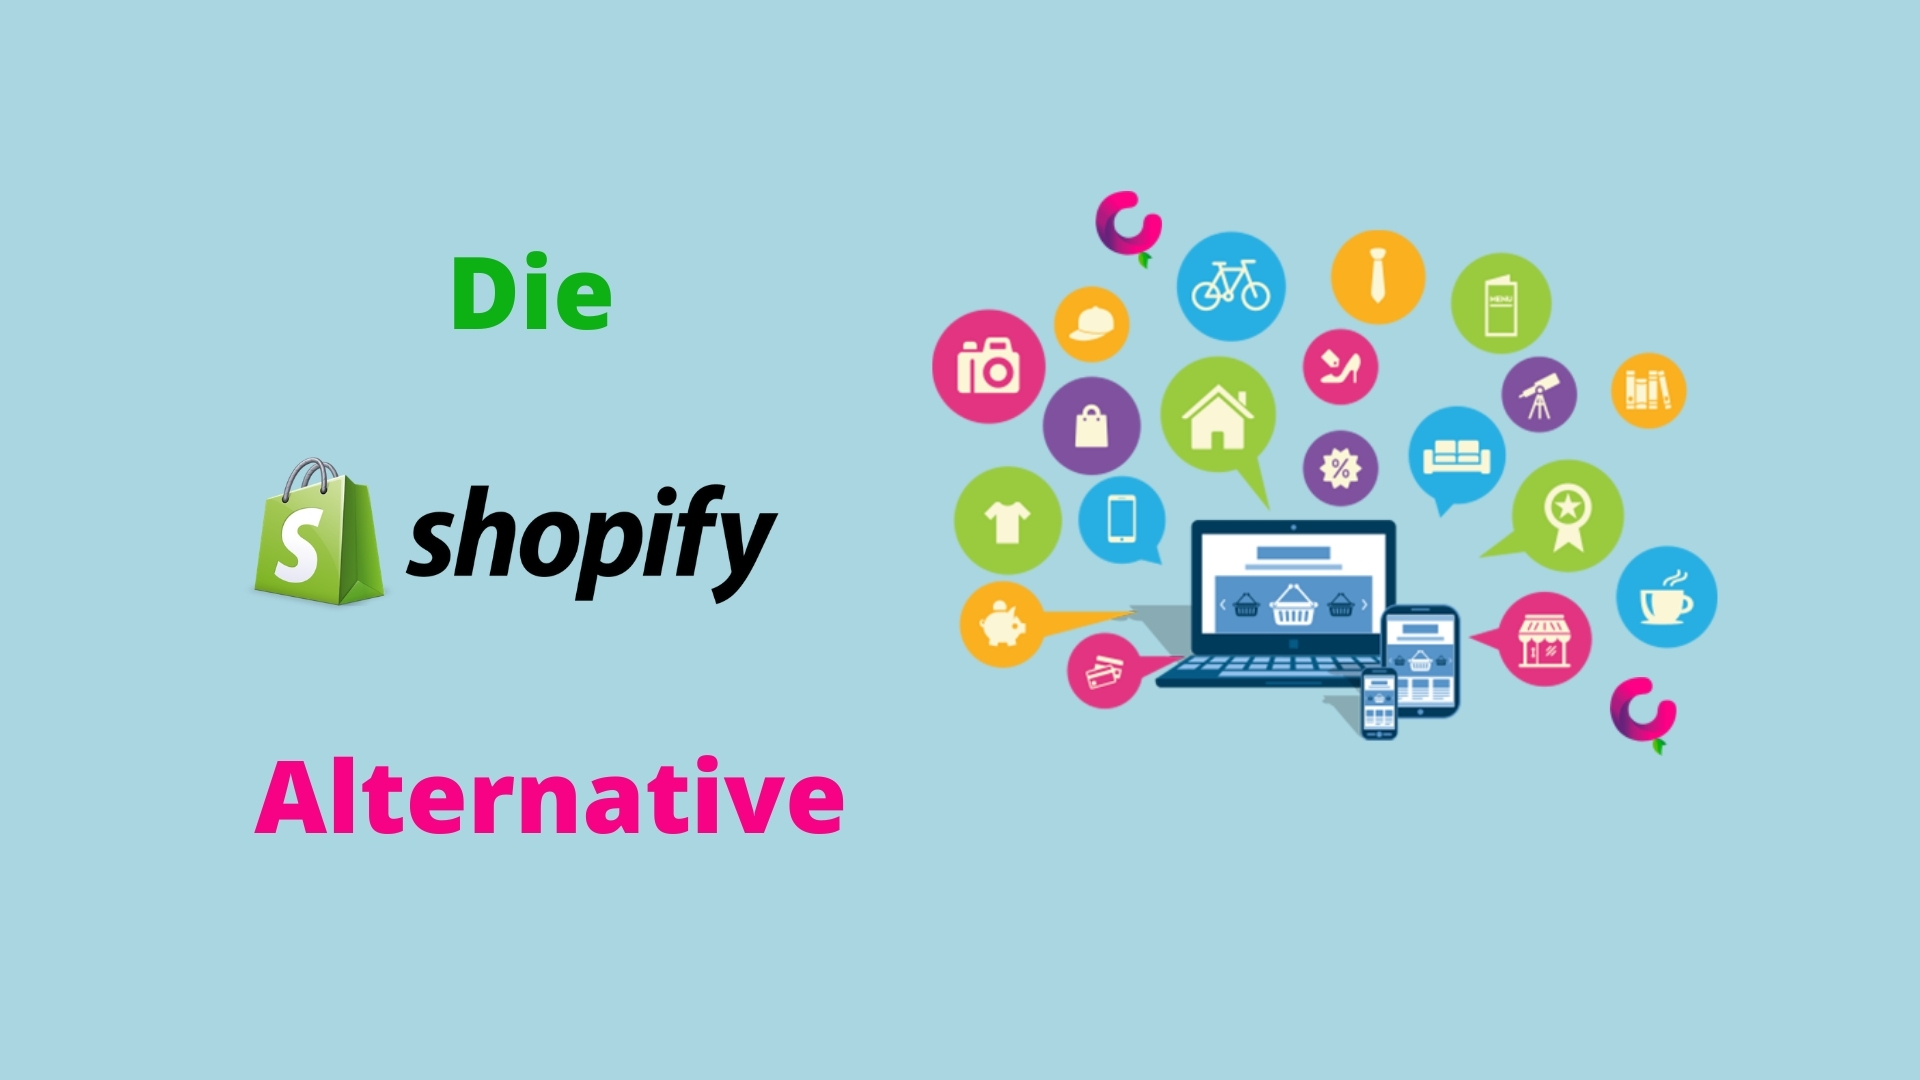 Die Shopify Alternative